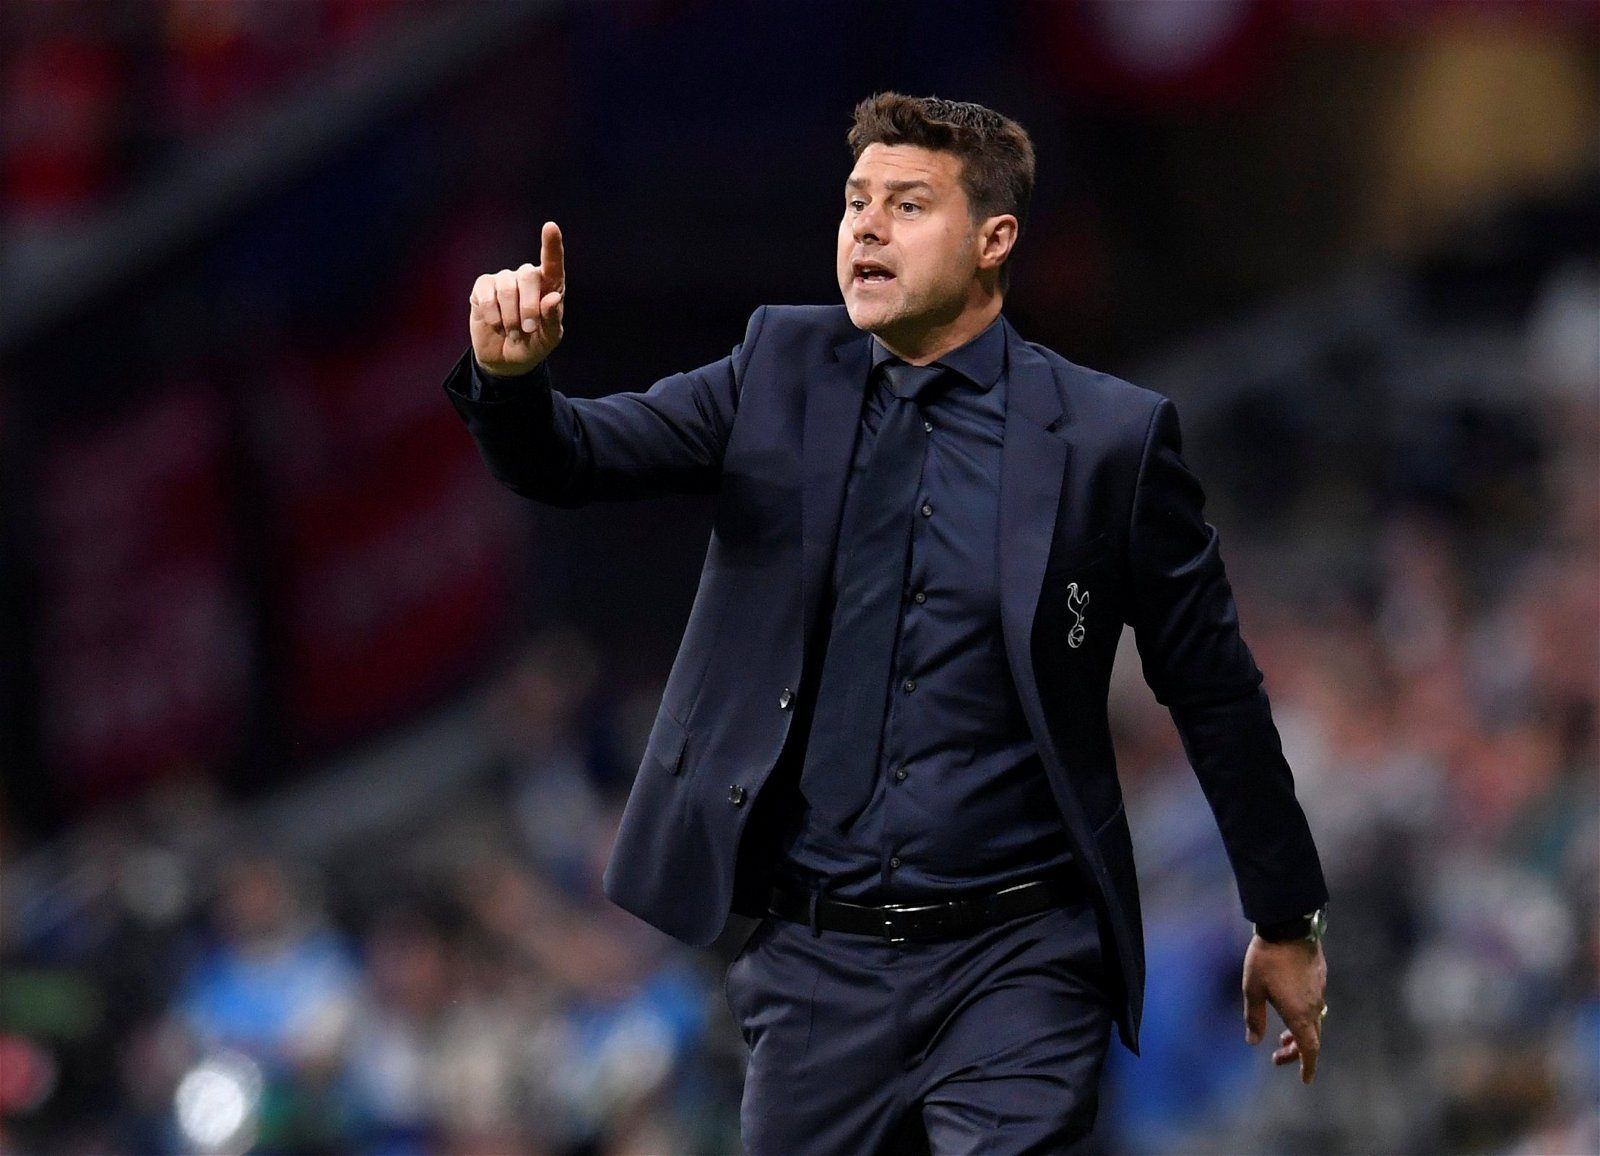 talkSPORT pundit may have nailed it with shocking take on Spurs boss Pochettino - opinion | FootballFanCast.com